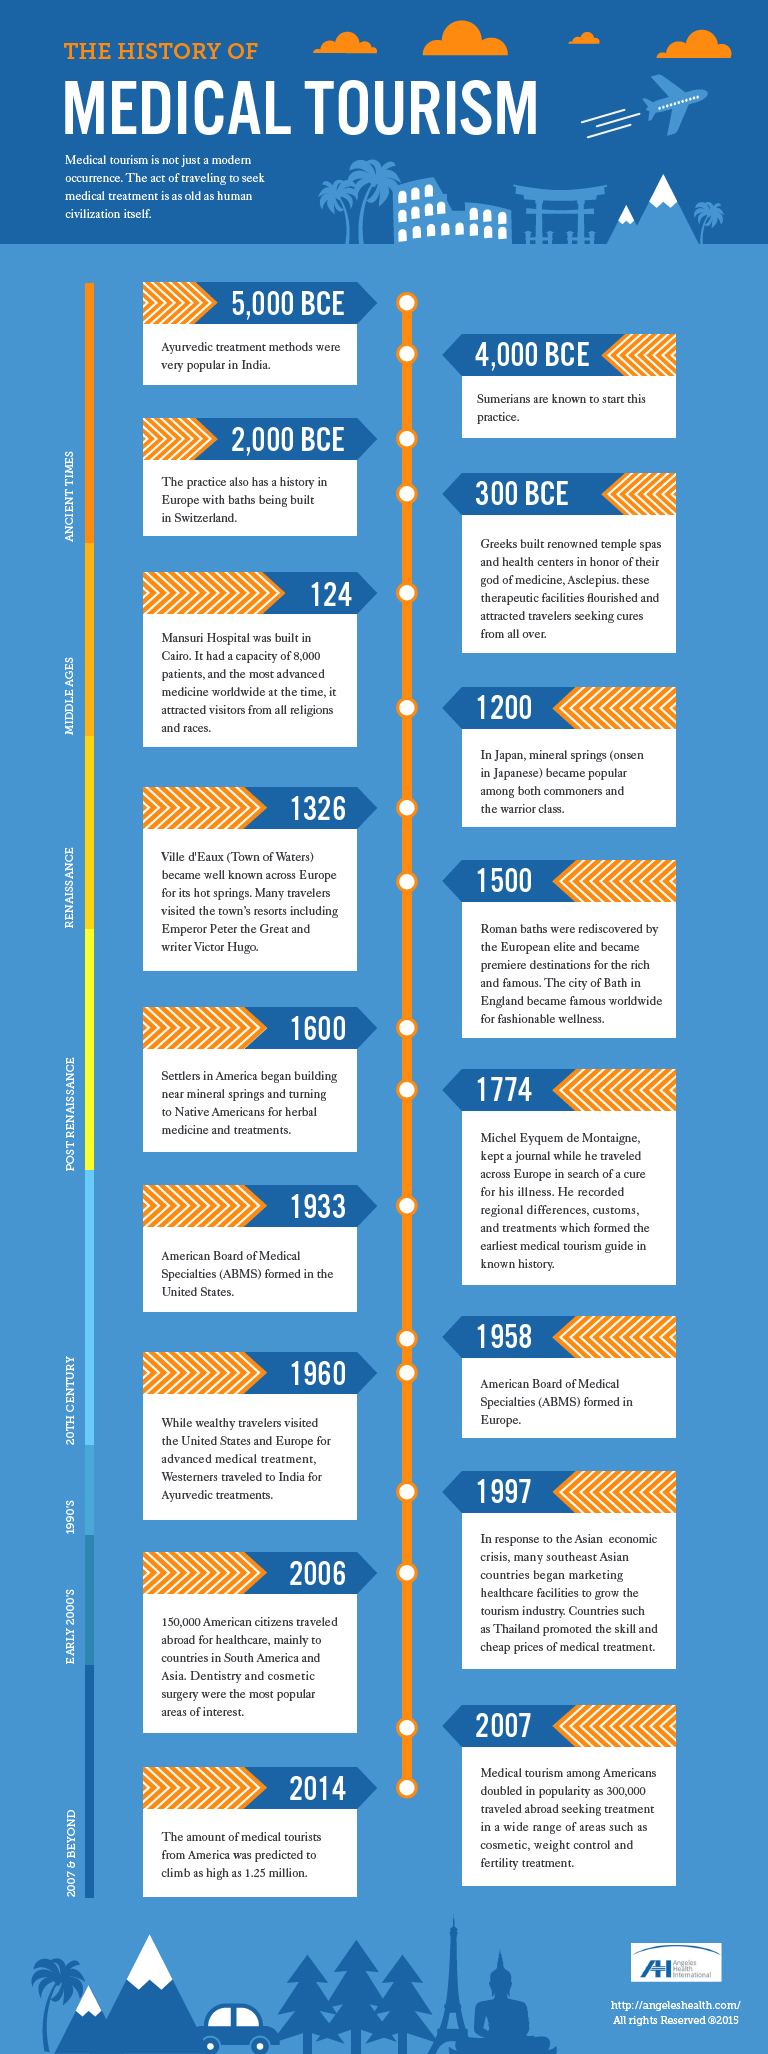 The History of Medical Tourism